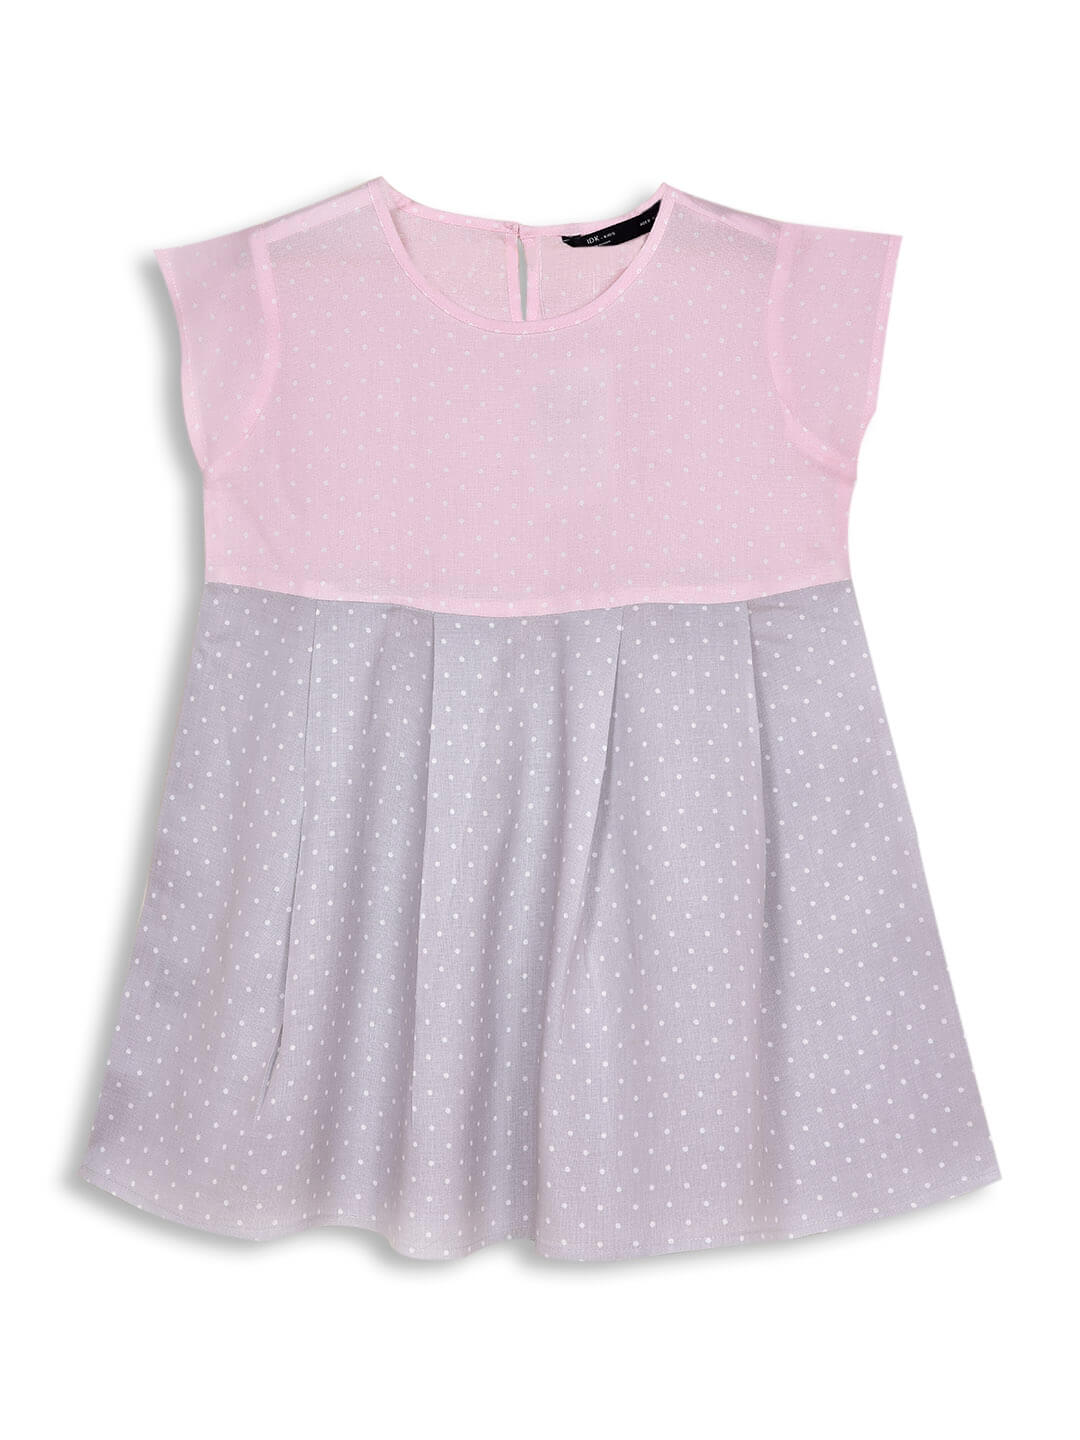 Pink Polka Dots Dress